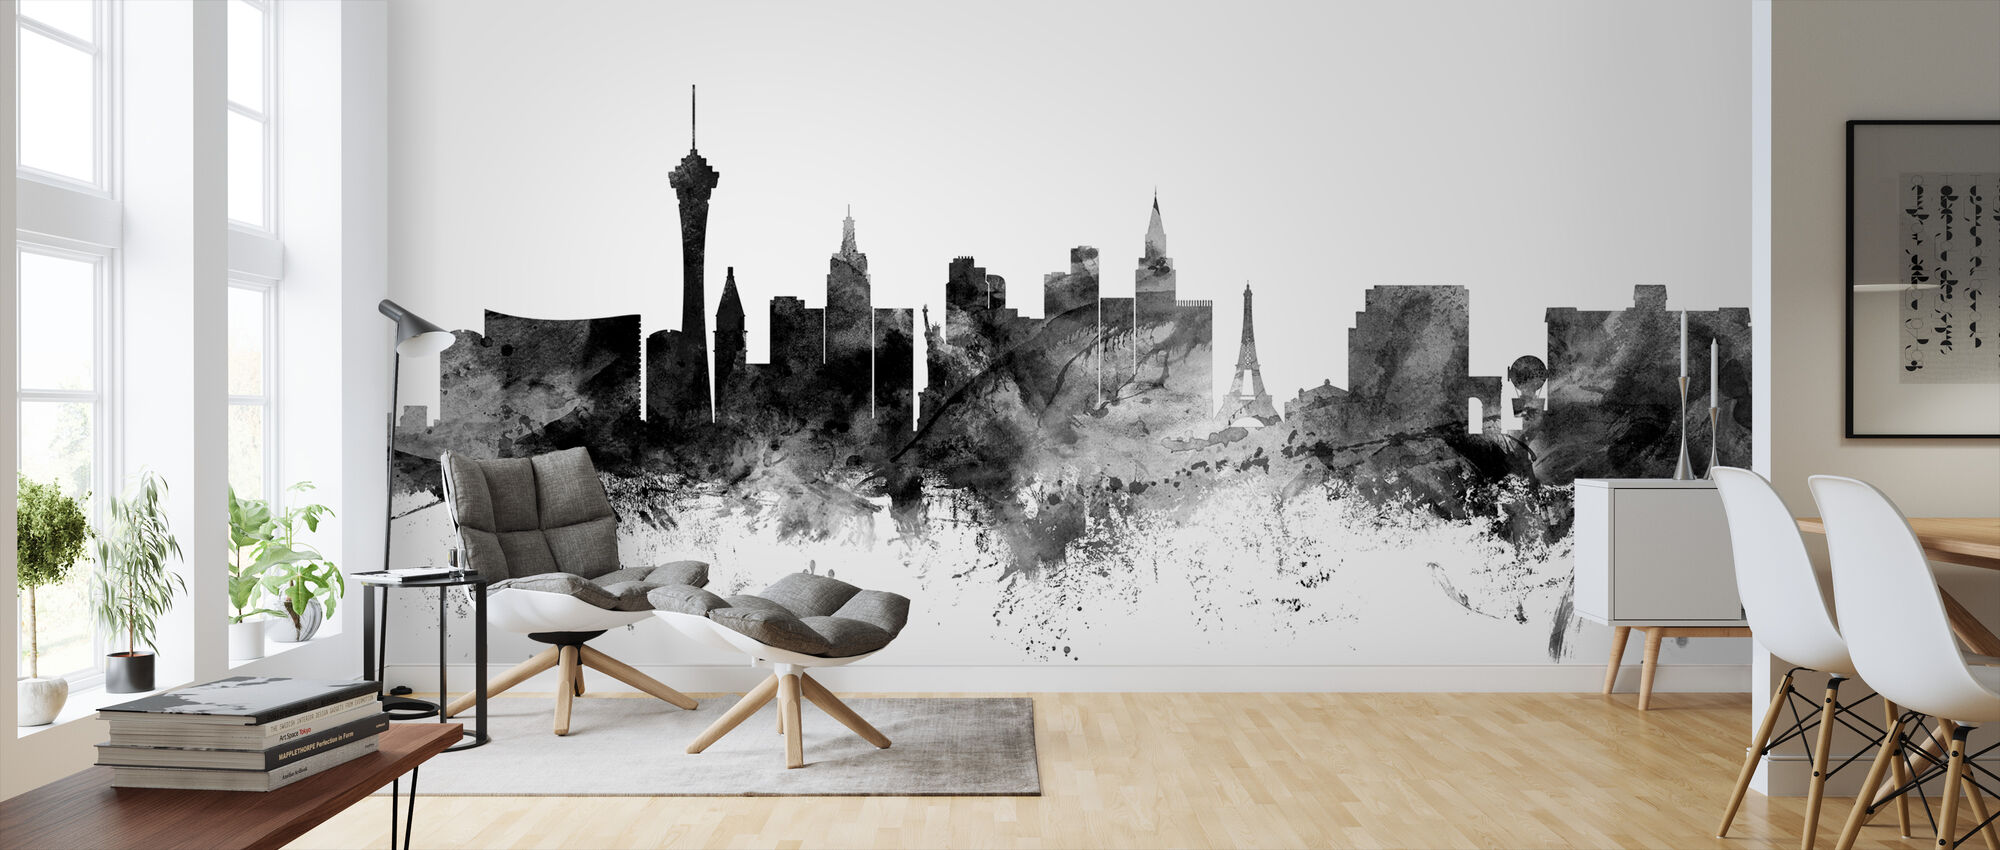 Las Vegas Skyline Black - Wallpaper - Living Room